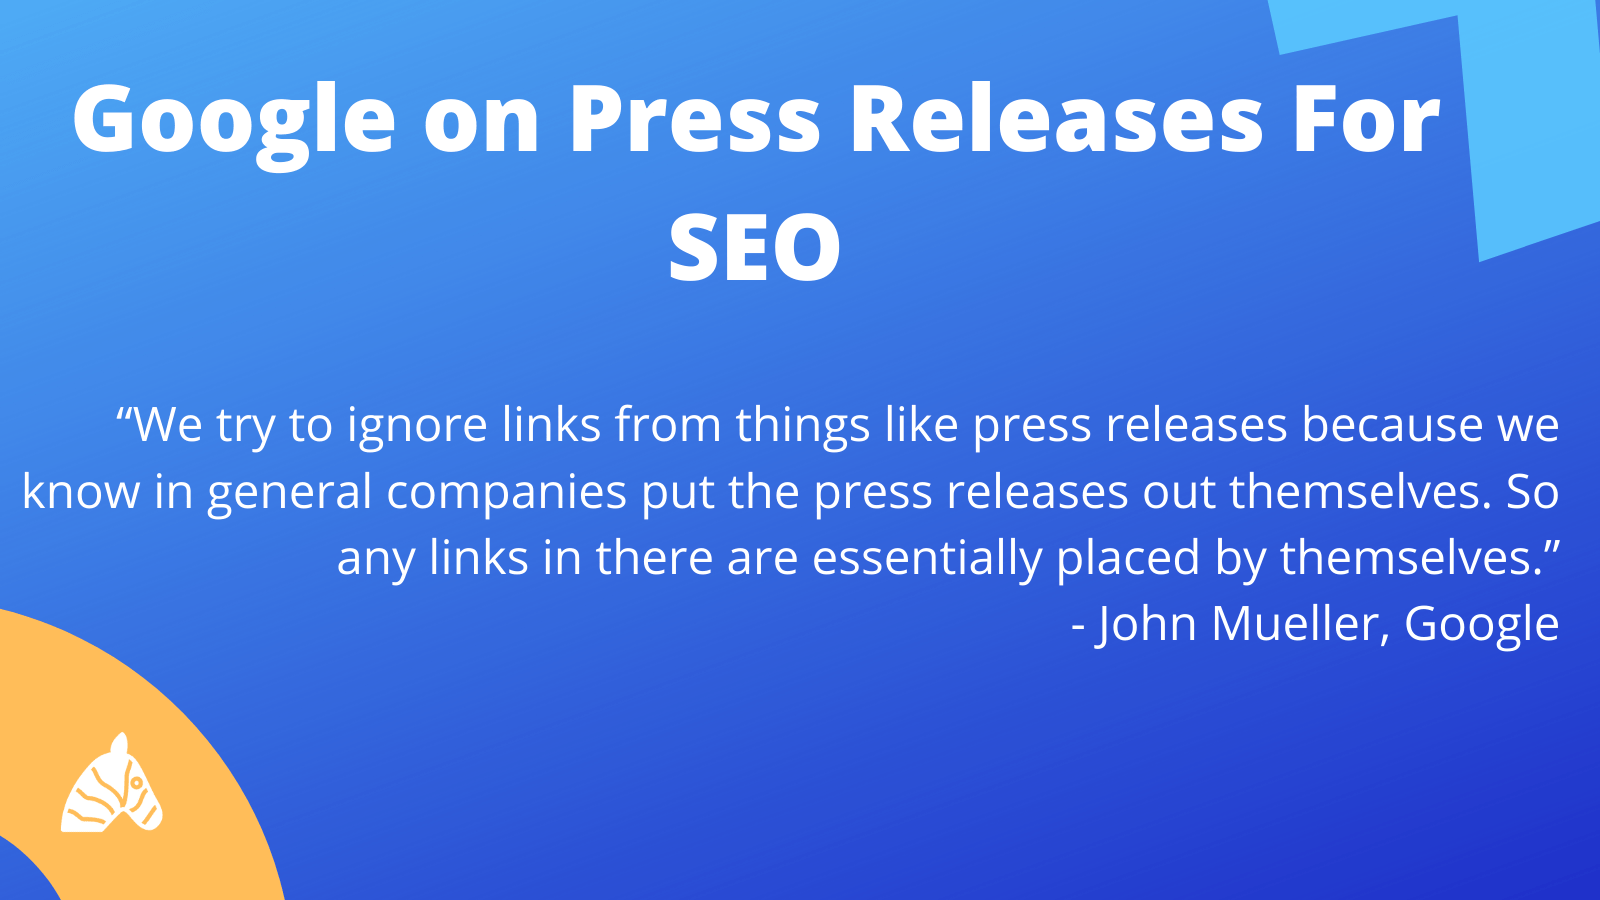 Google's stance on press releases for SEO